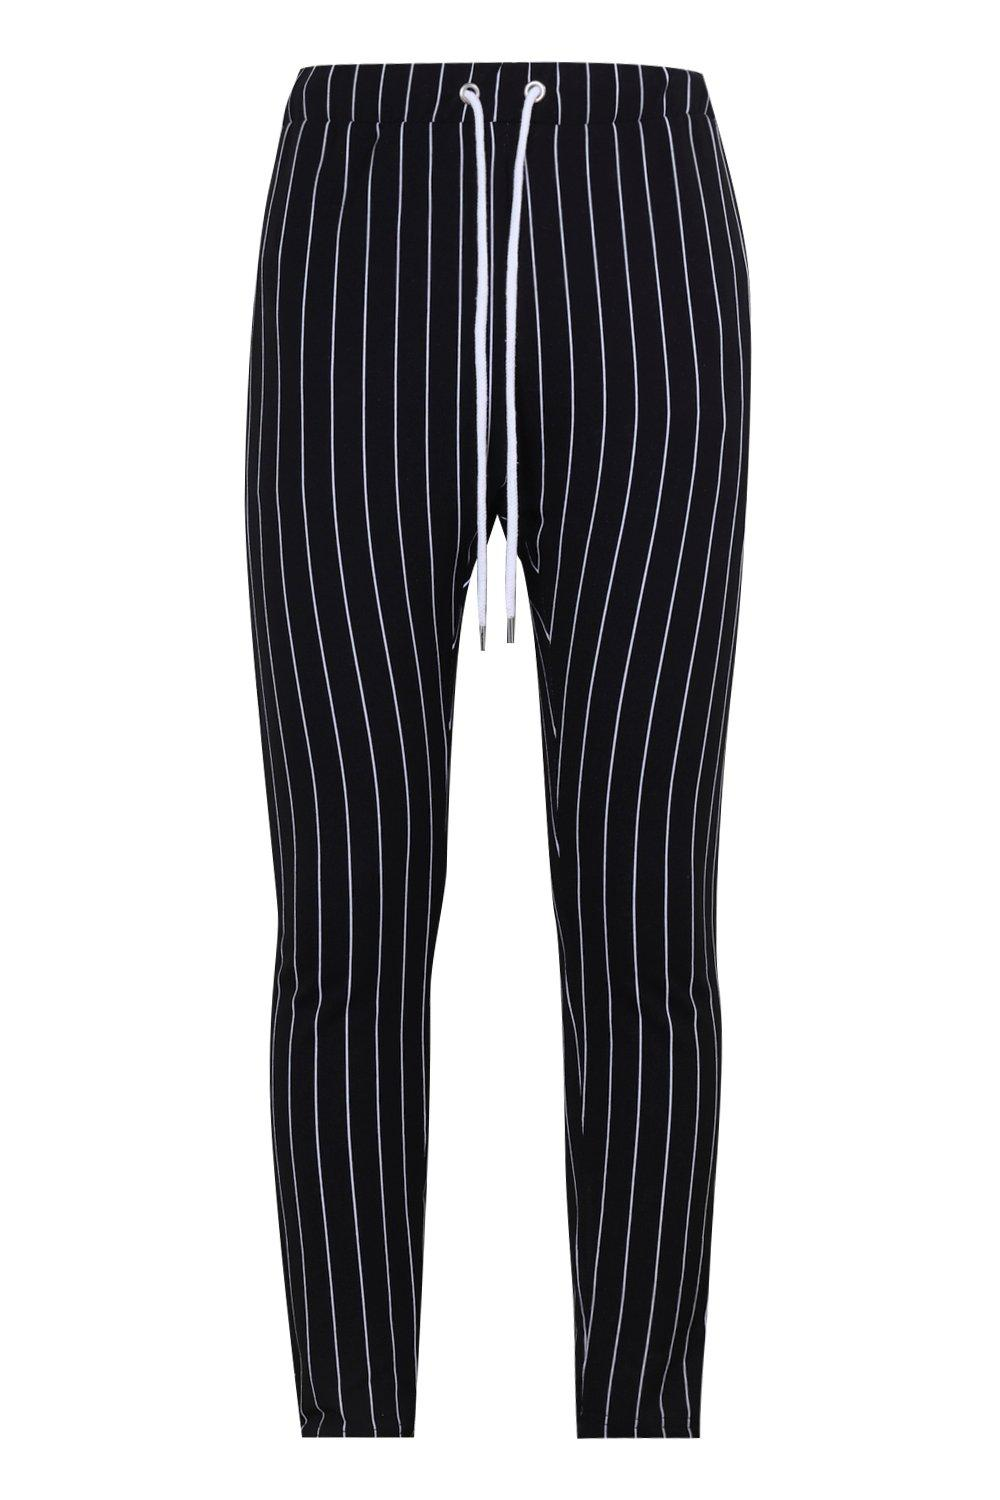 Striped Joggers black Skinny Skinny Fit Joggers Fit Striped black A6xOAYq